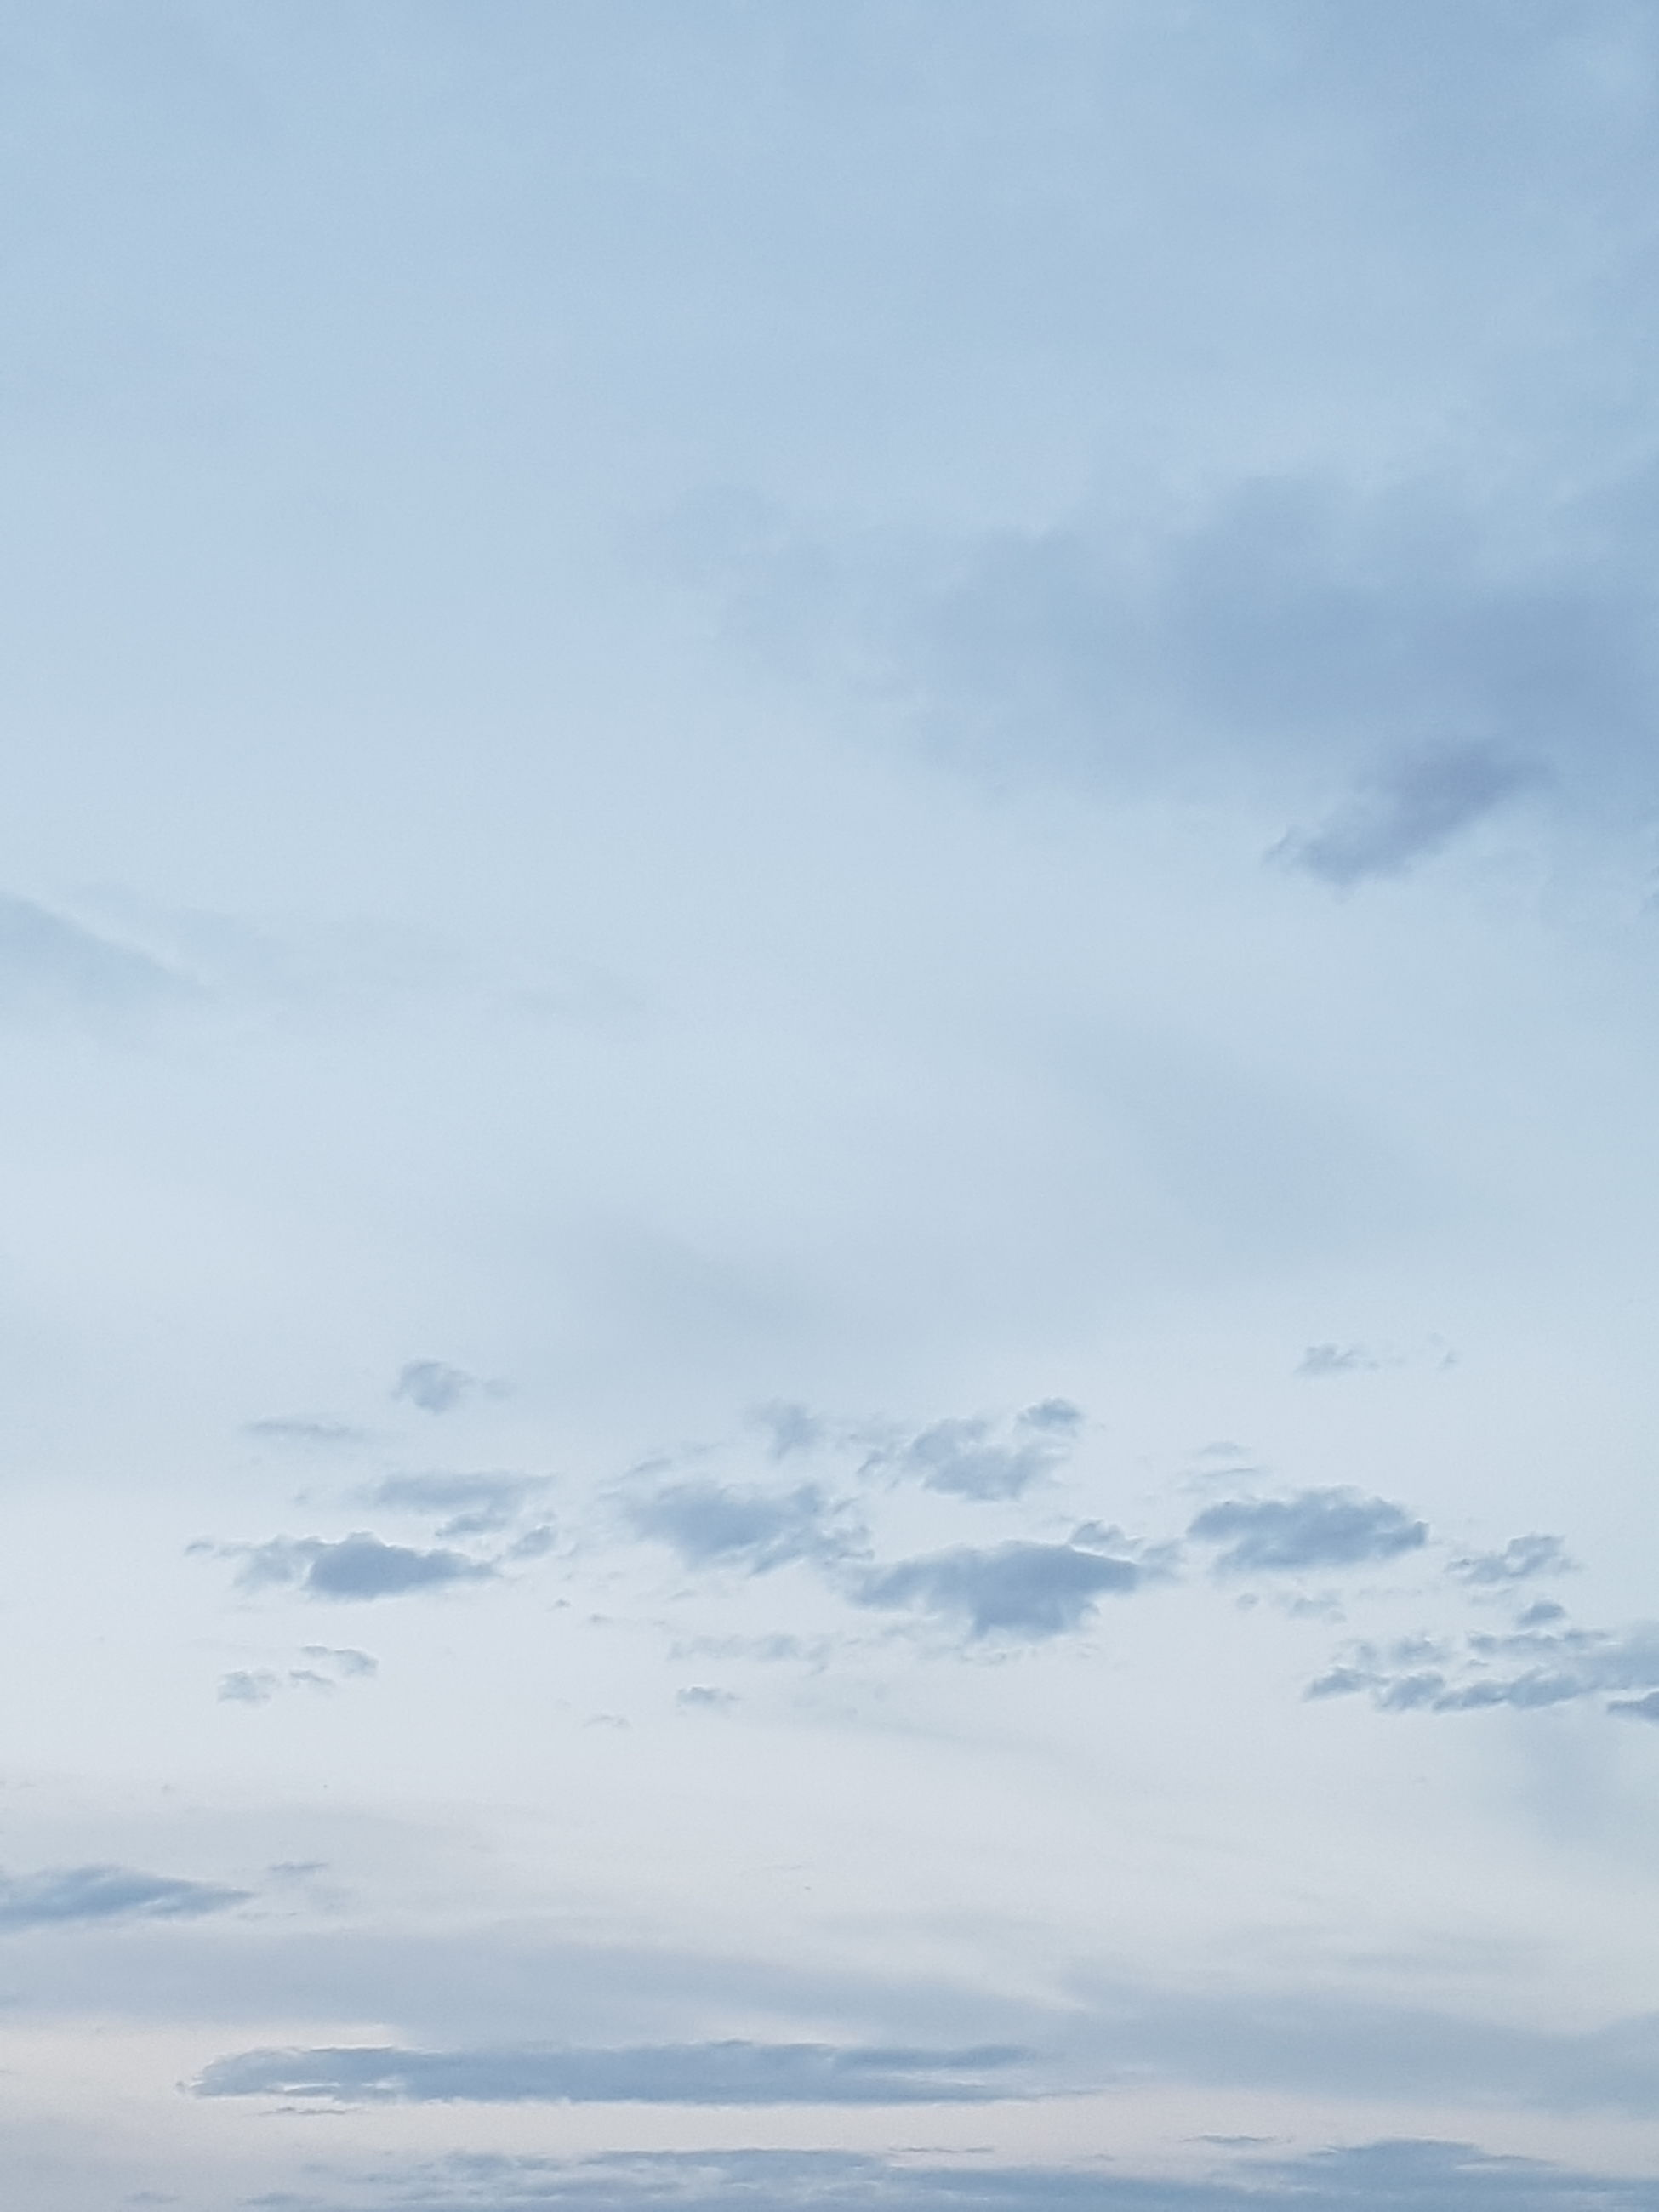 cloud - sky, sky, nature, beauty in nature, tranquility, no people, scenics, low angle view, tranquil scene, outdoors, day, sky only, backgrounds, scenery